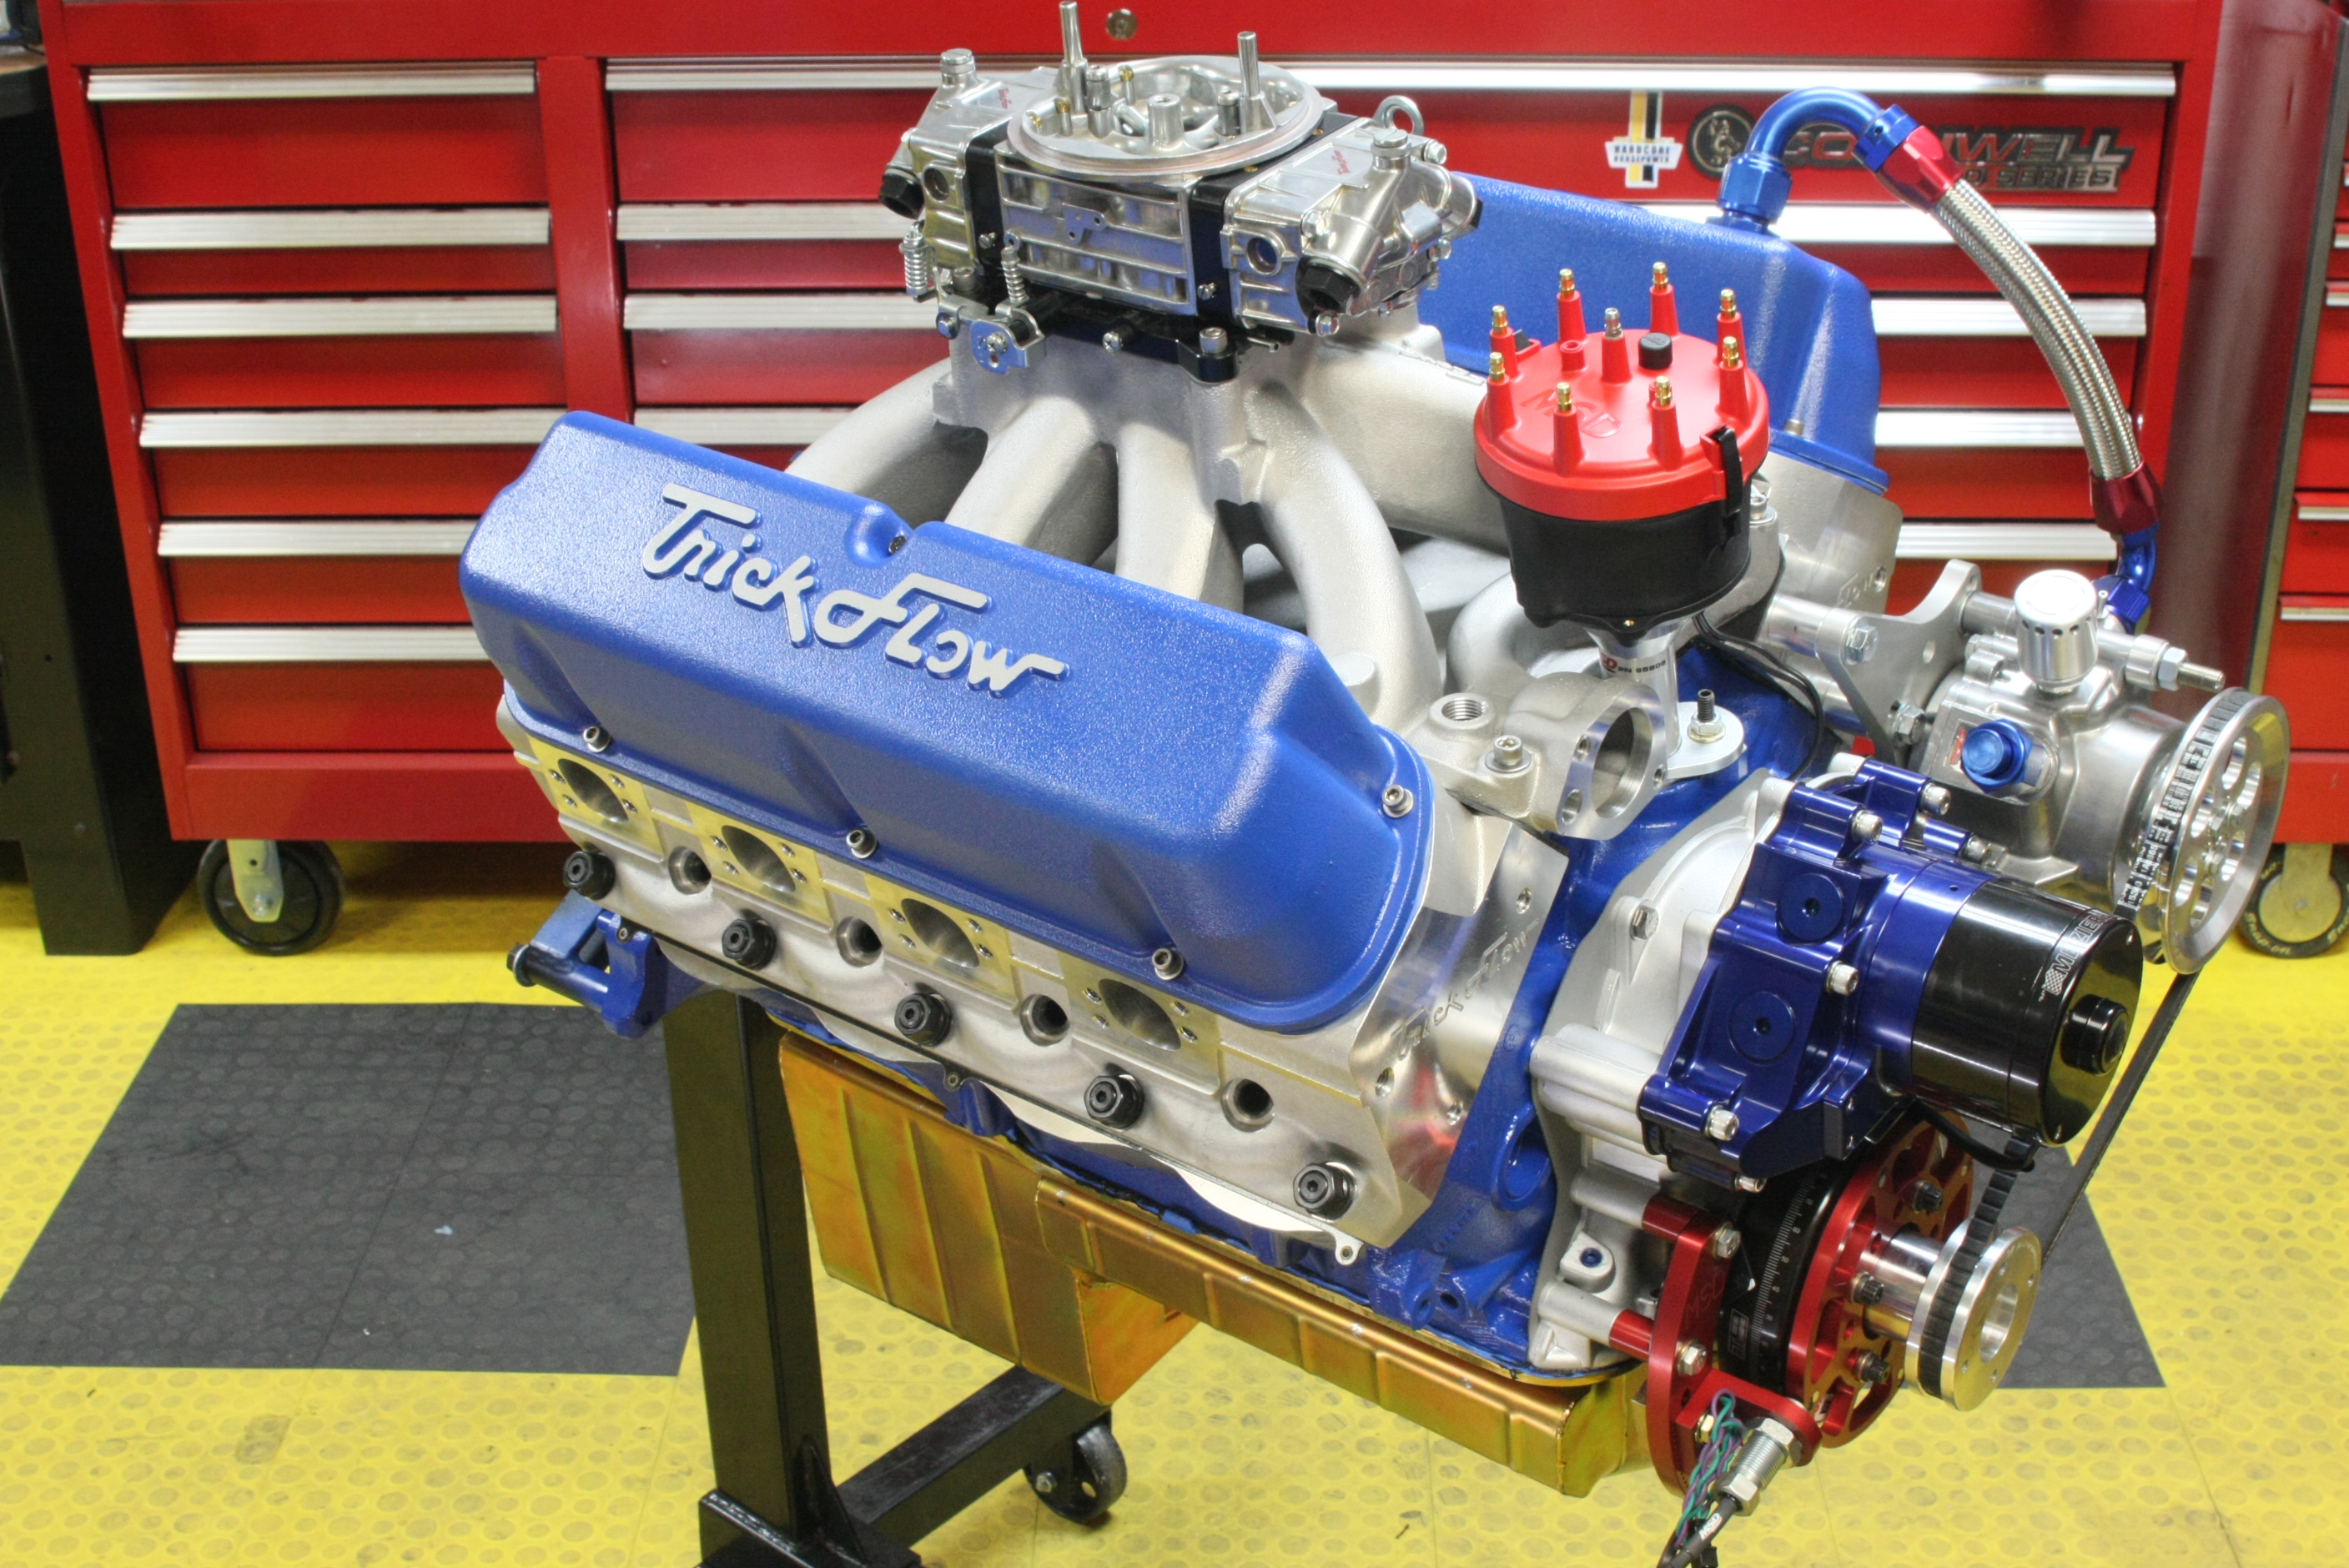 The Wonder Windsor: Hardcore Horsepower's 735 HP Small Block Ford